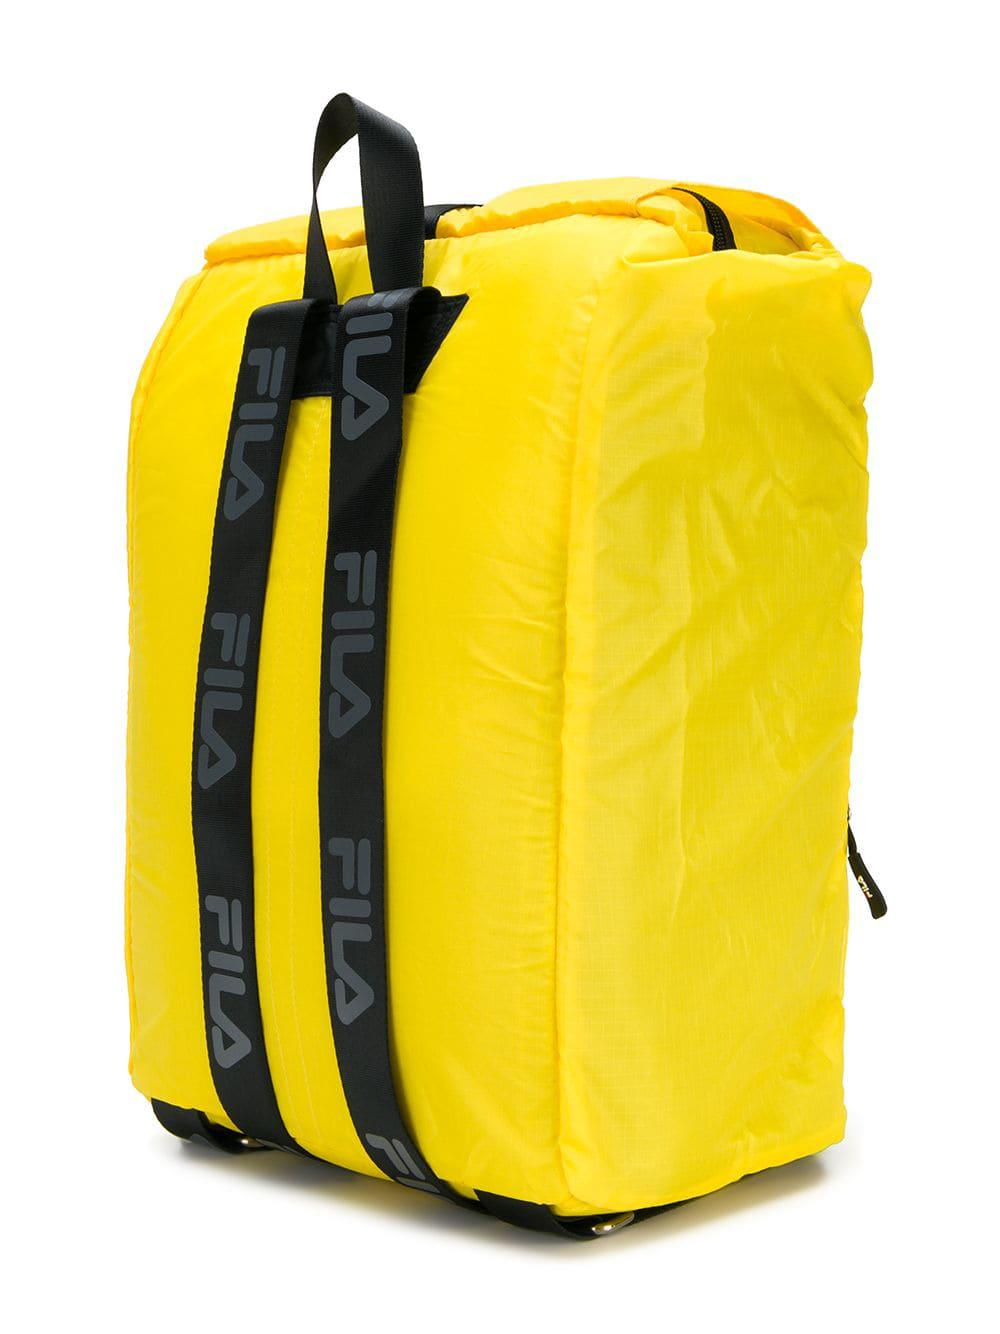 Lyst - Fila Logo Buckled Backpack in Yellow